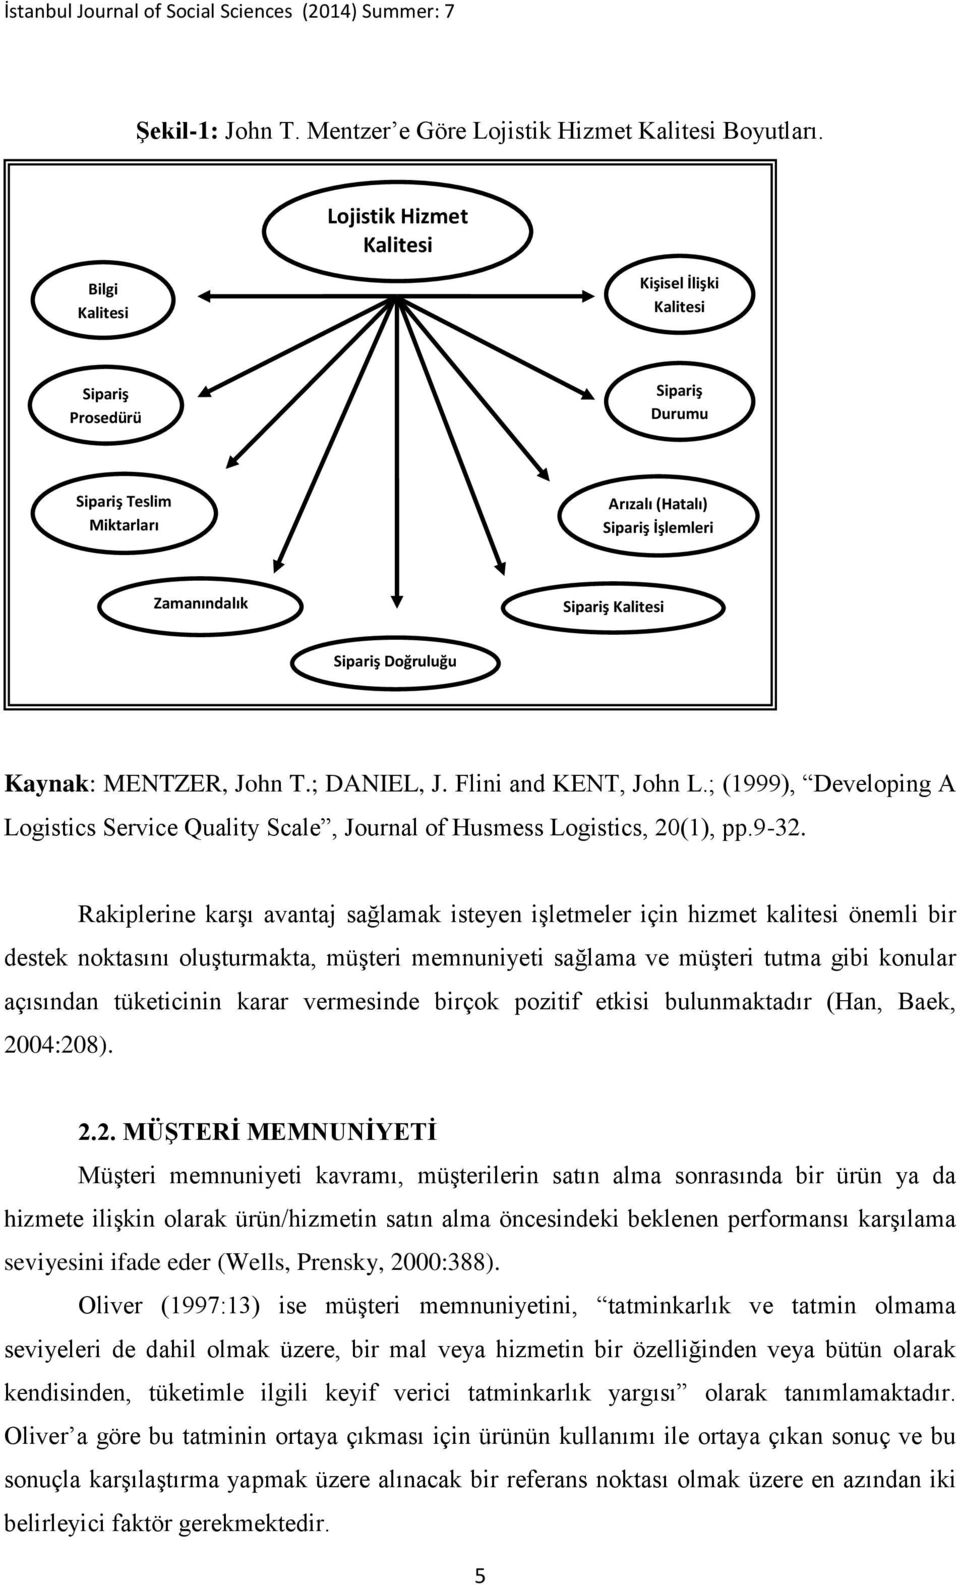 Doğruluğu Kaynak: MENTZER, John T.; DANIEL, J. Flini and KENT, John L.; (1999), Developing A Logistics Service Quality Scale, Journal of Husmess Logistics, 20(1), pp.932.